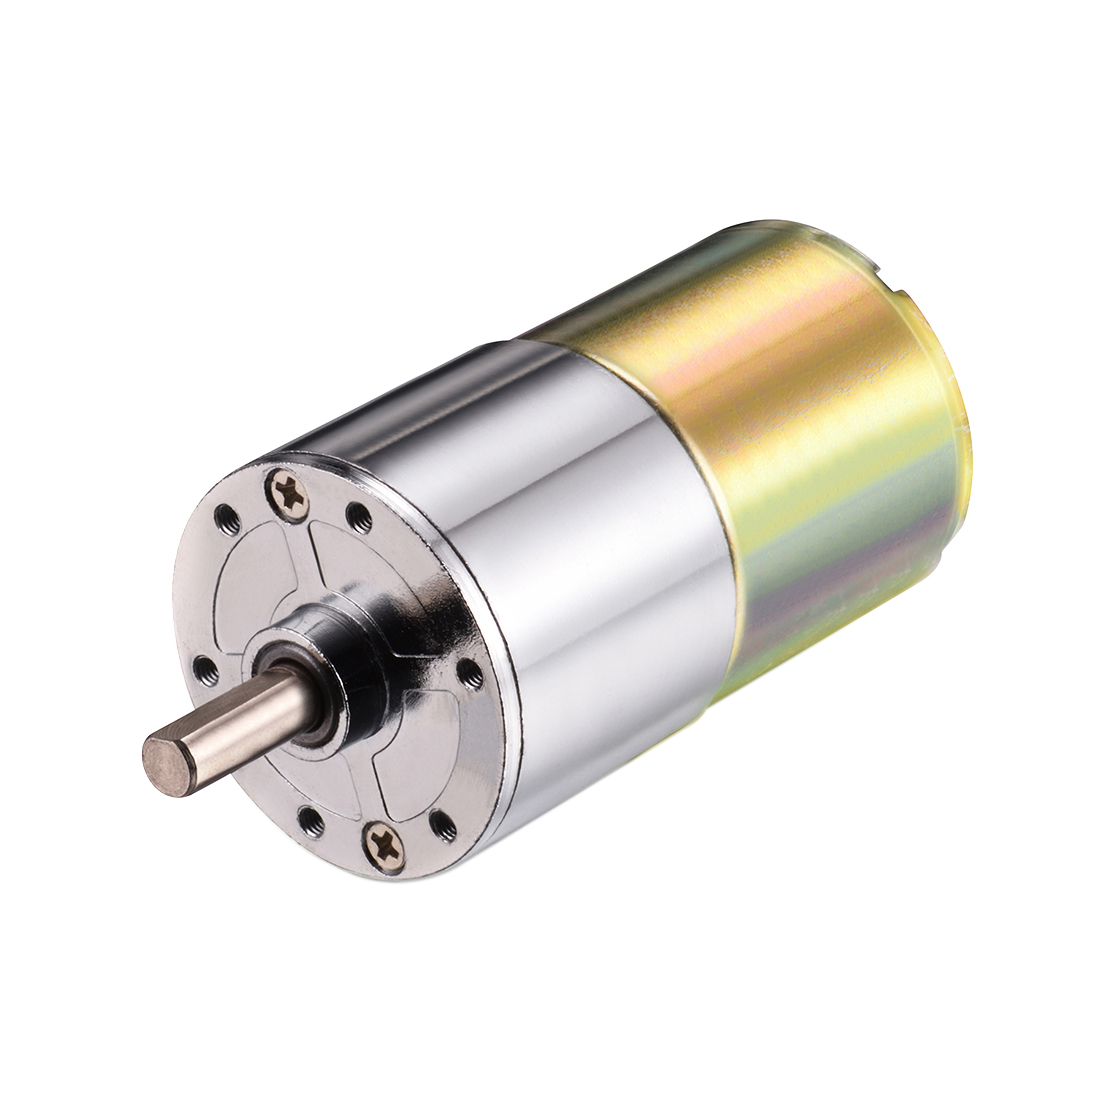 DC 24V 1000RPM Micro Gear Box Motor Speed Reduction Electric Gearbox Centric Output Shaft